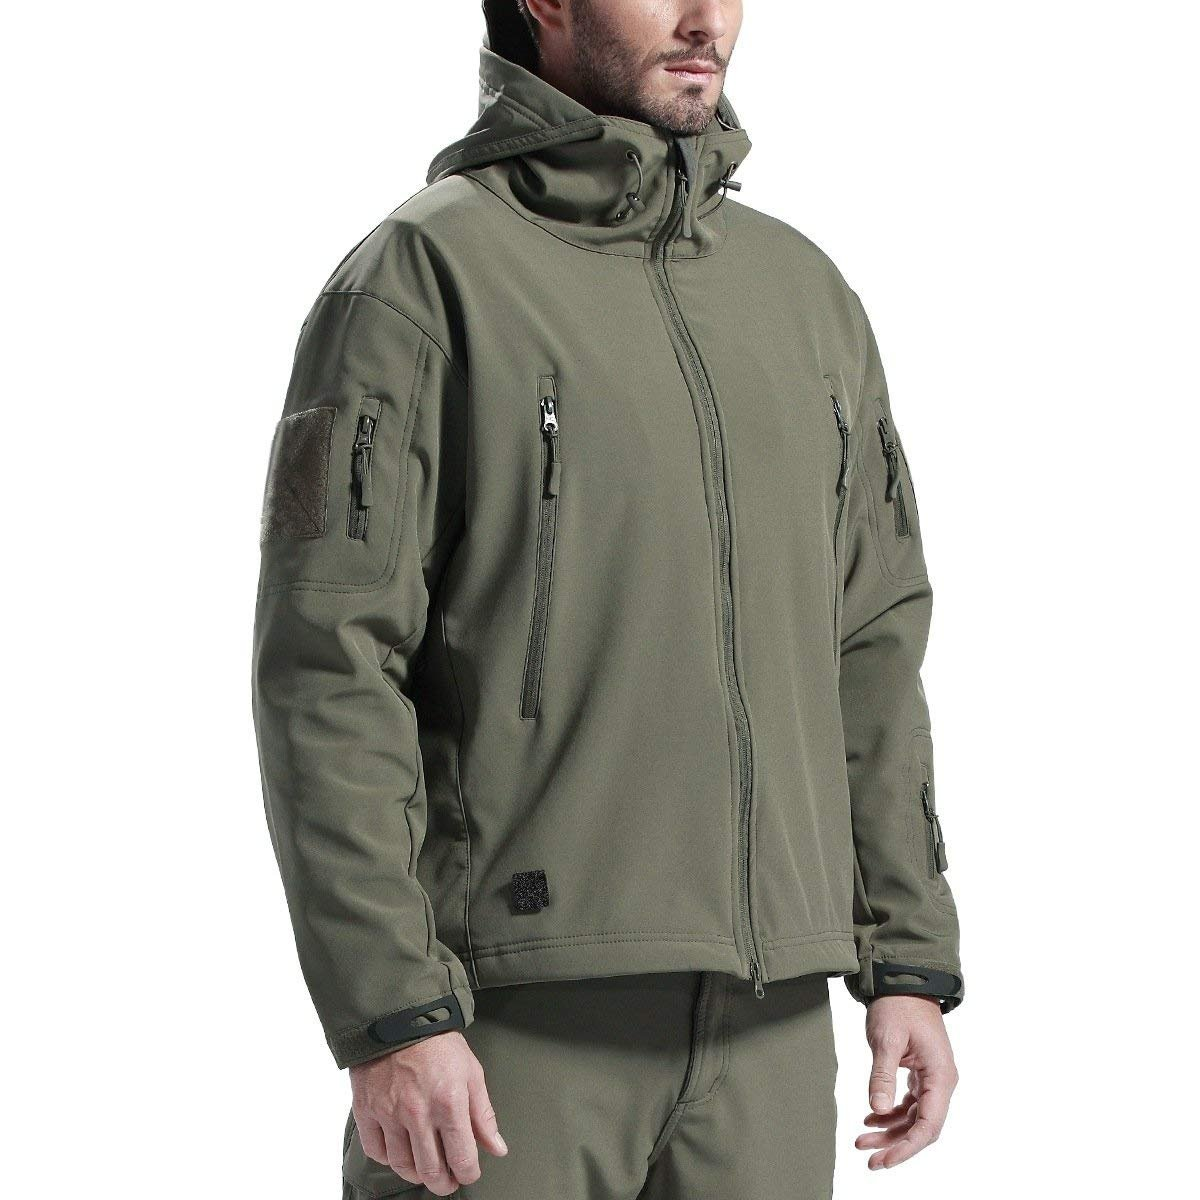 FREE SOLDIER Men's Outdoor Waterproof Soft Shell Hooded Military Tactical Jacket(Army Green XL) by FREE SOLDIER